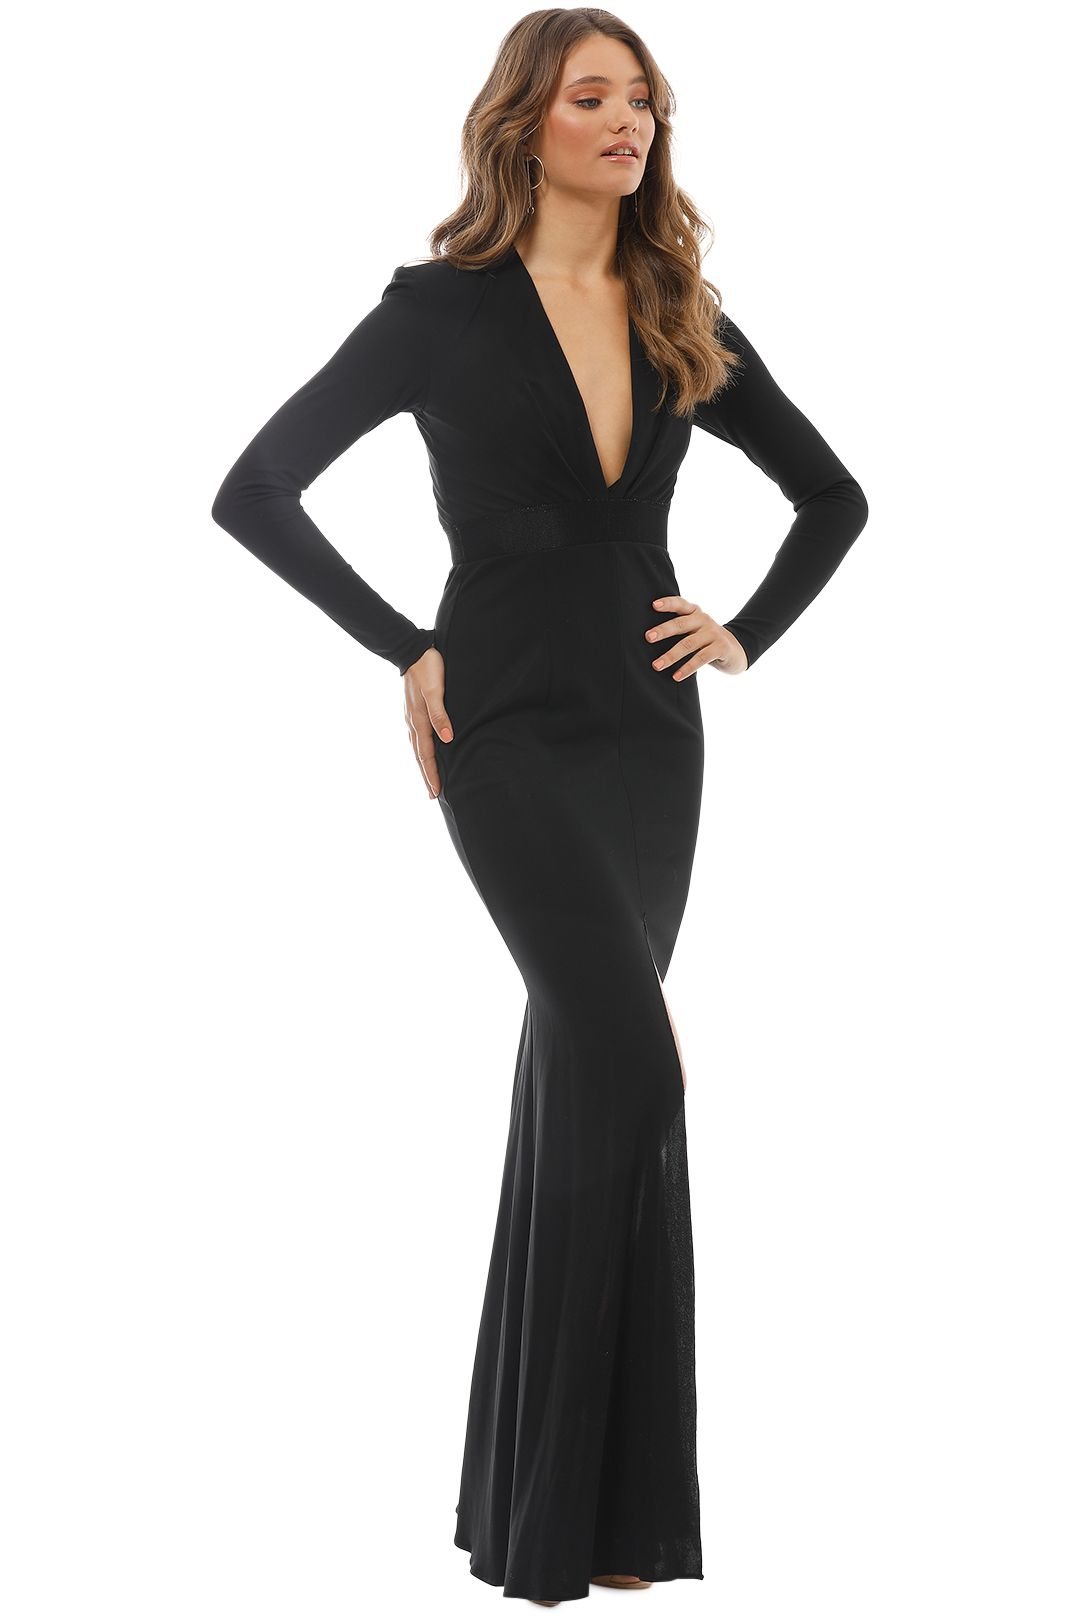 Alex Perry - Nadine V Long Sleeve Gown - Black - Side